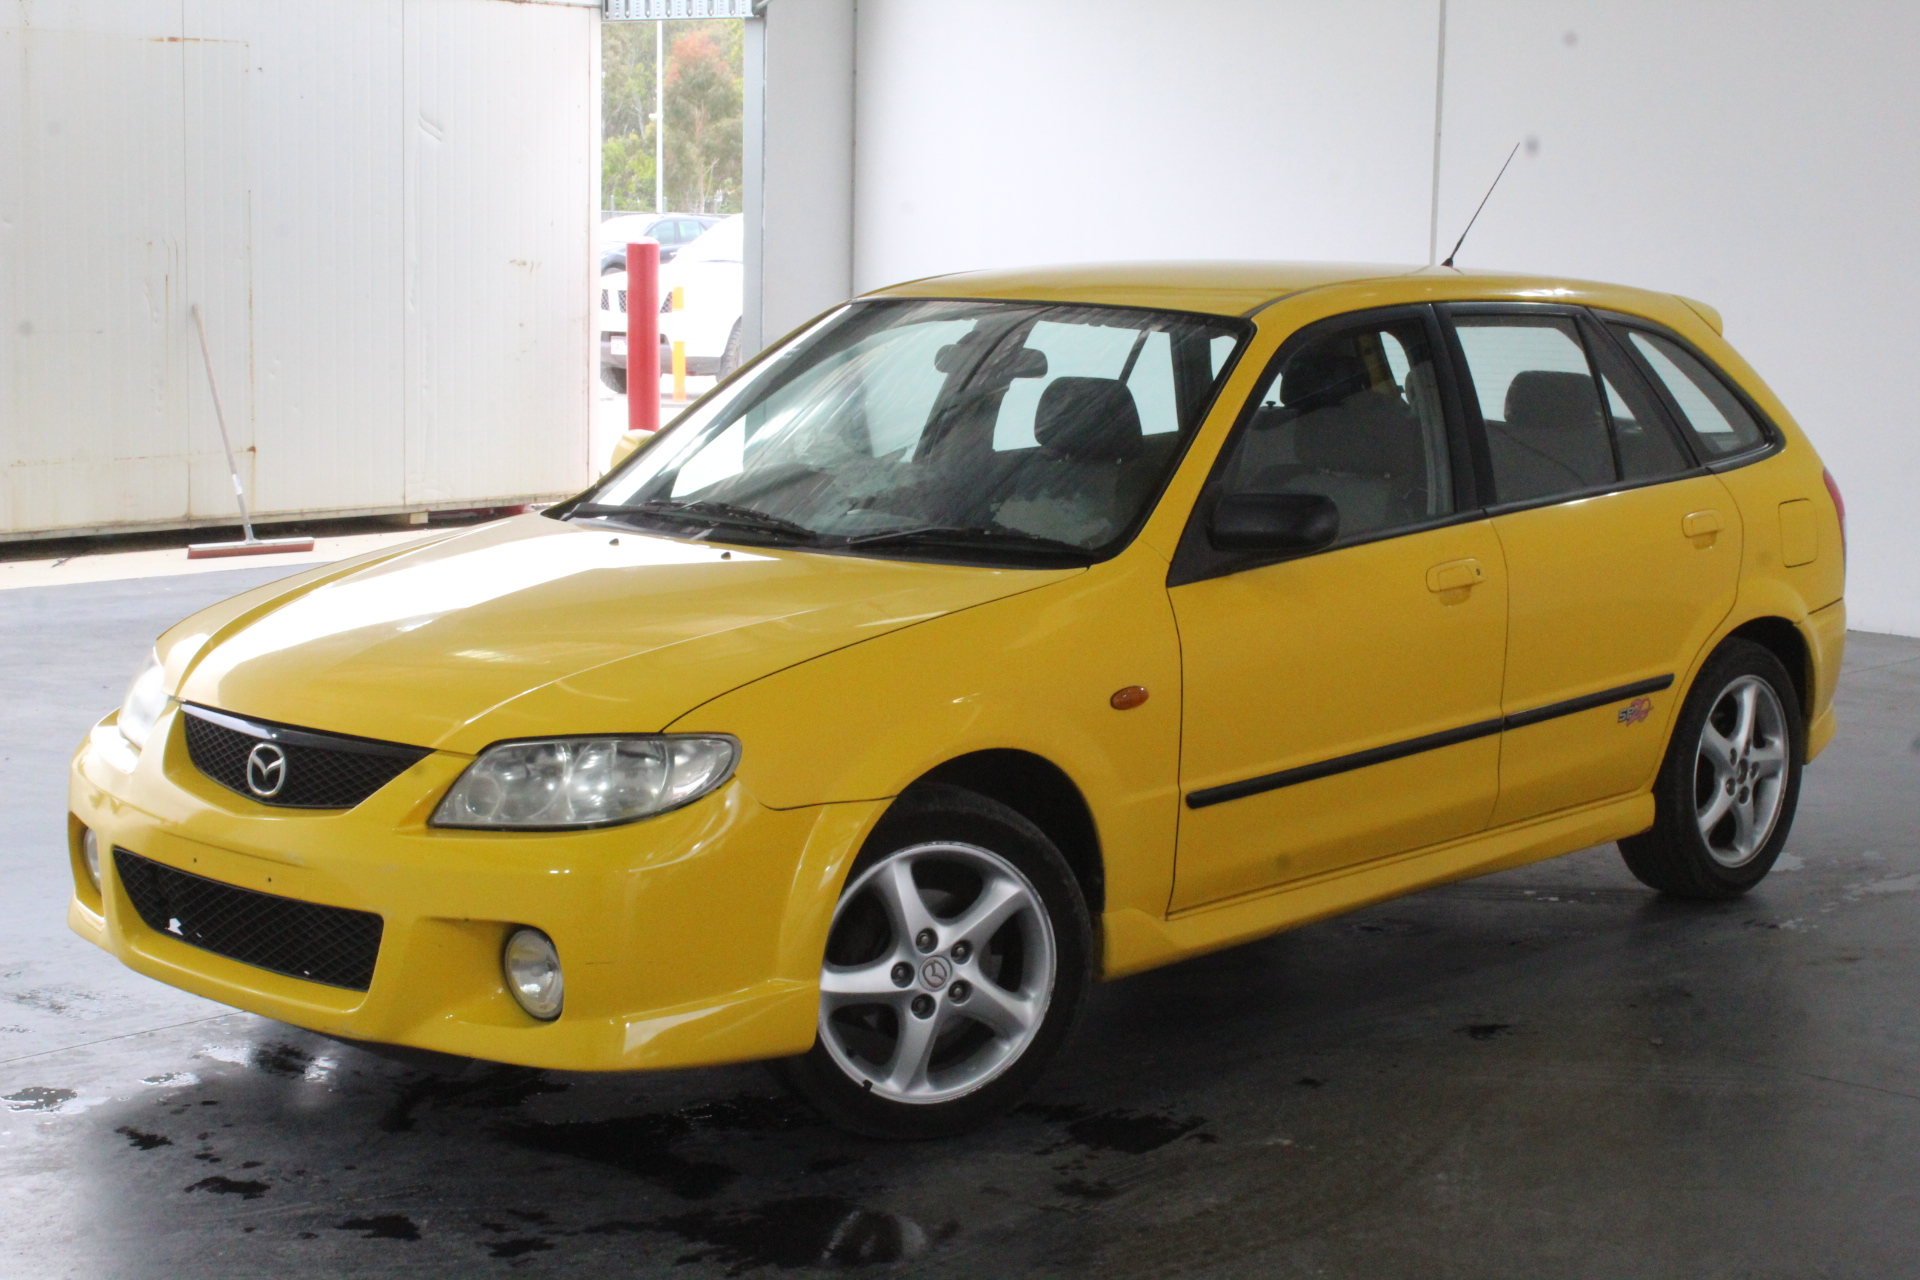 2001 Mazda 323 Astina SP20 BJ Manual Hatchback Auction (0001-3435107) |  GraysOnline Australia